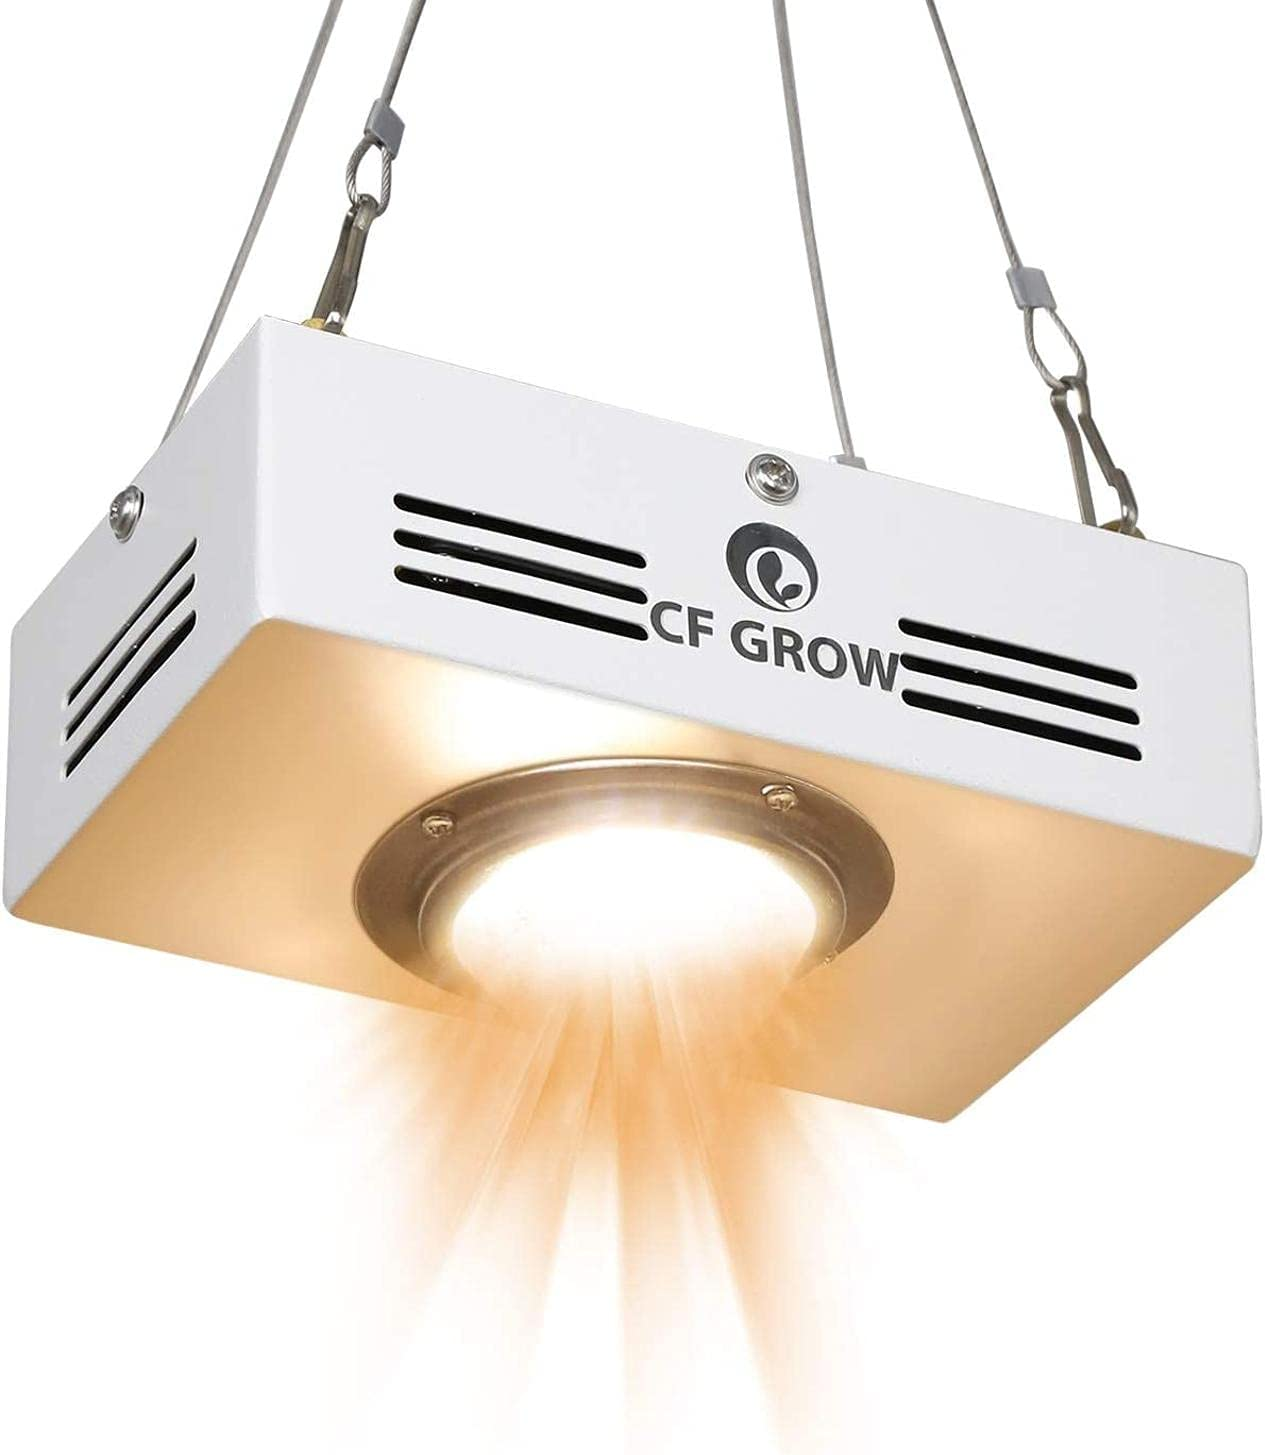 CESULIS 300W 600W 900W COB lowest price LED Selling rankings Spectrum Indo Full for Light Grow